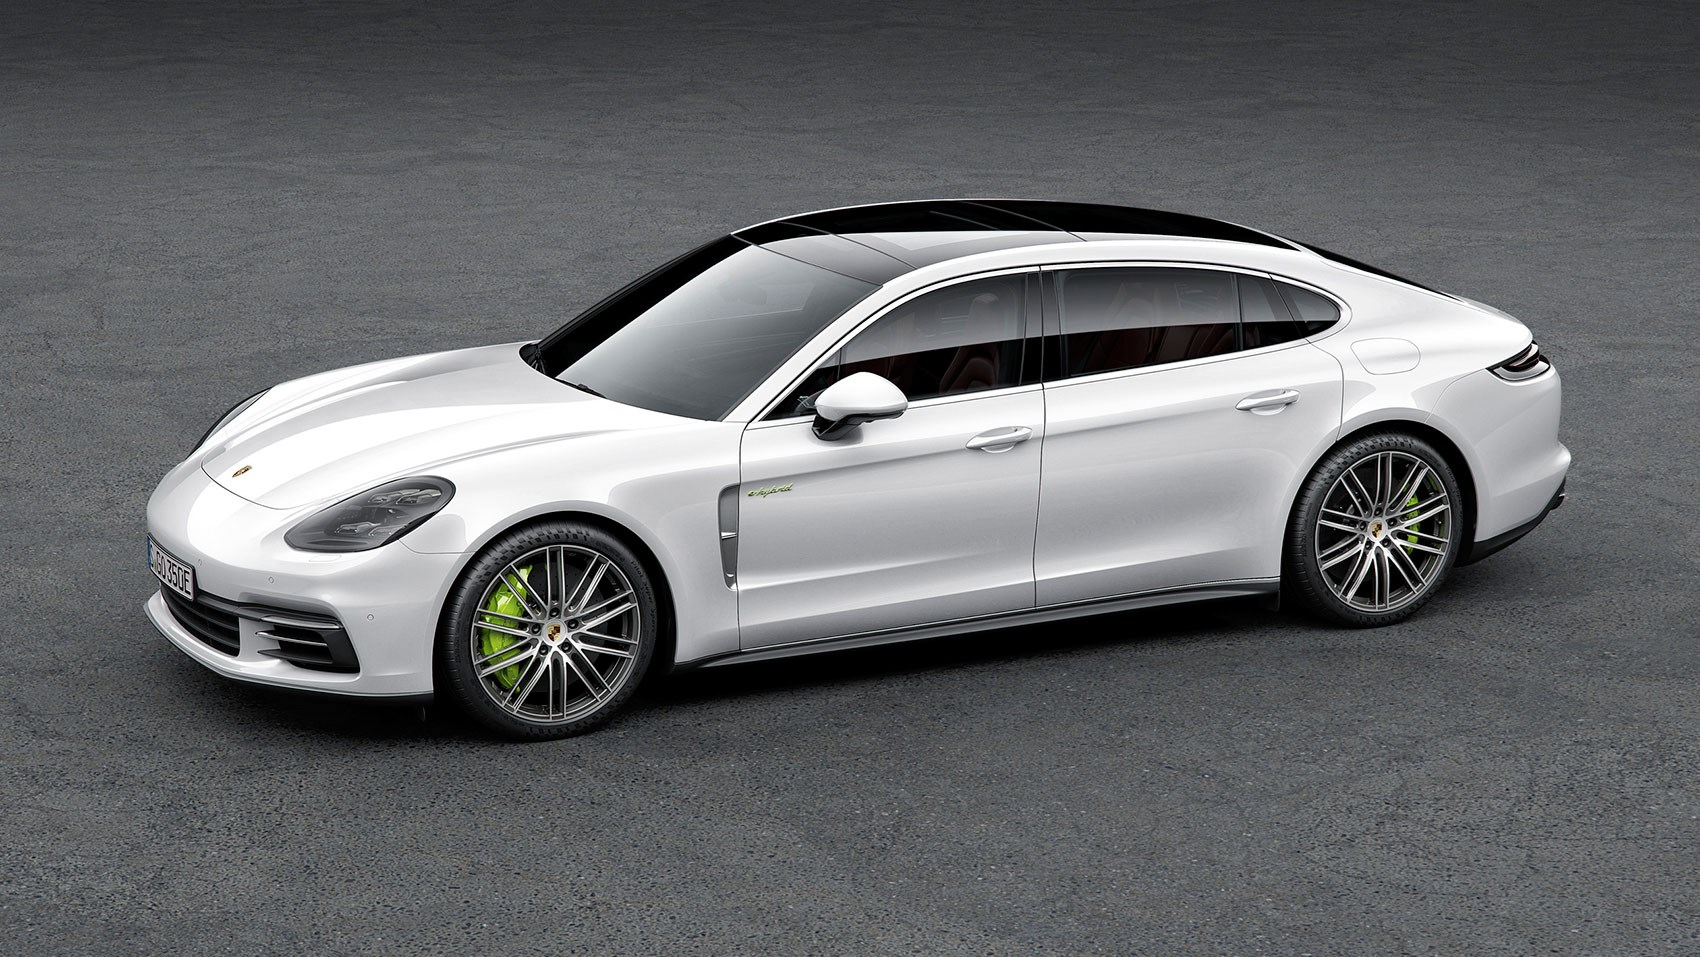 Porsche Panamera Executive Longer Rear Doors A Giveaway Now Much Easier To Climb Onboard